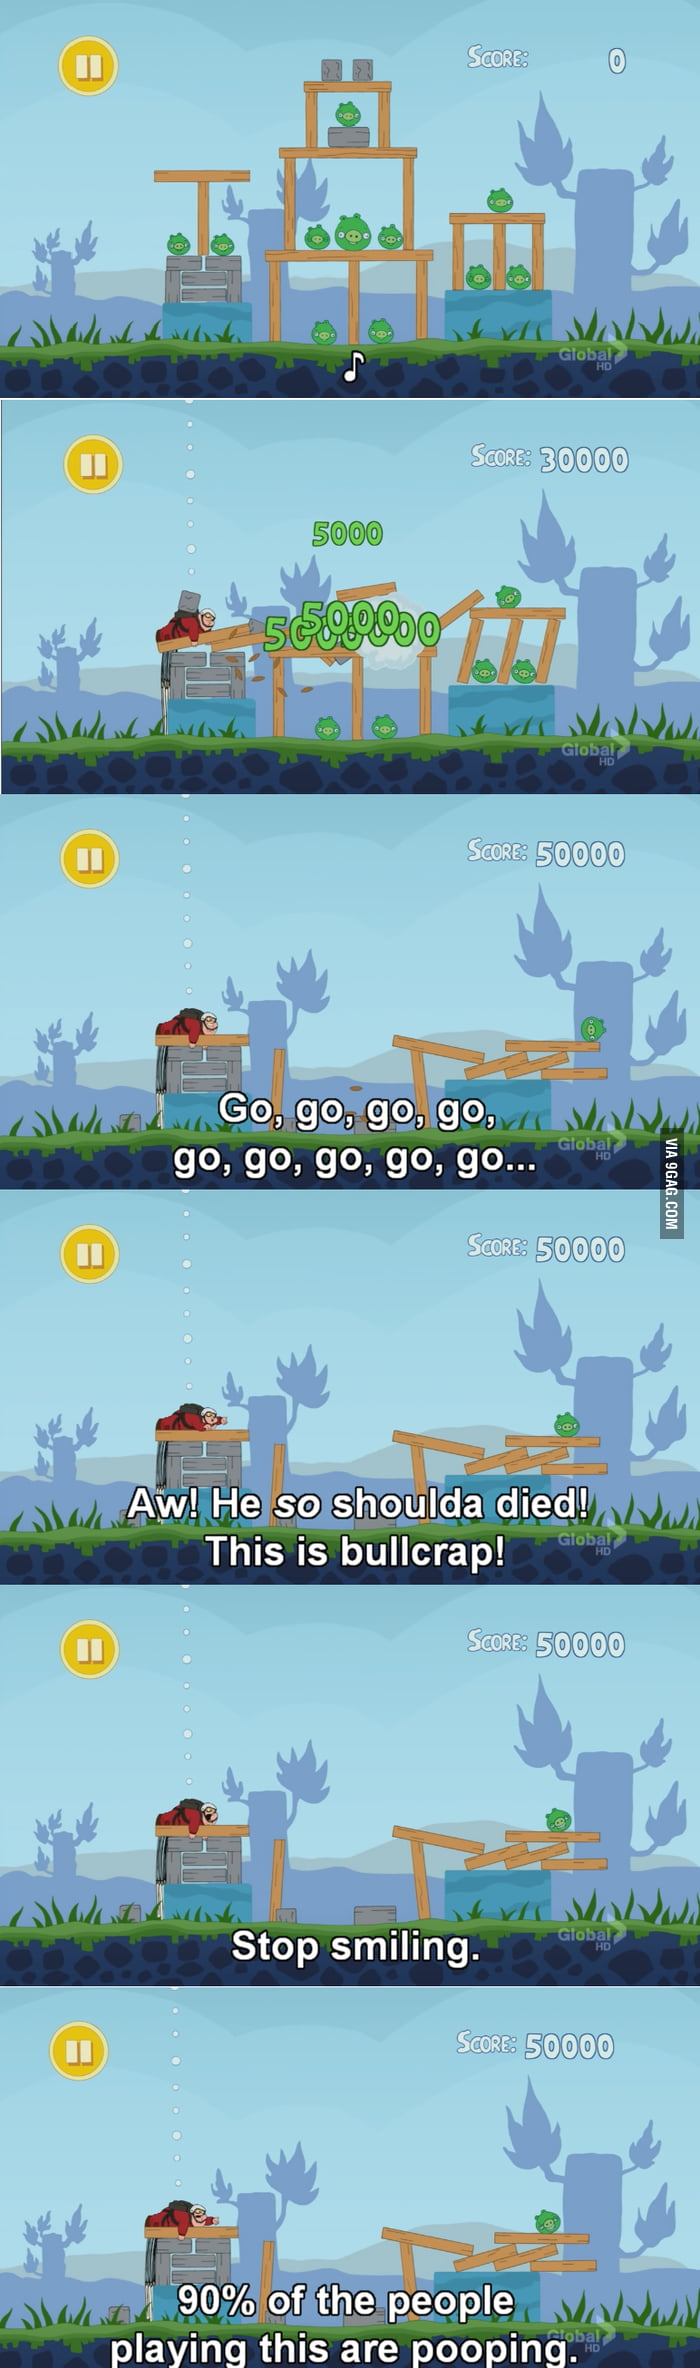 Peter meets Angry Birds